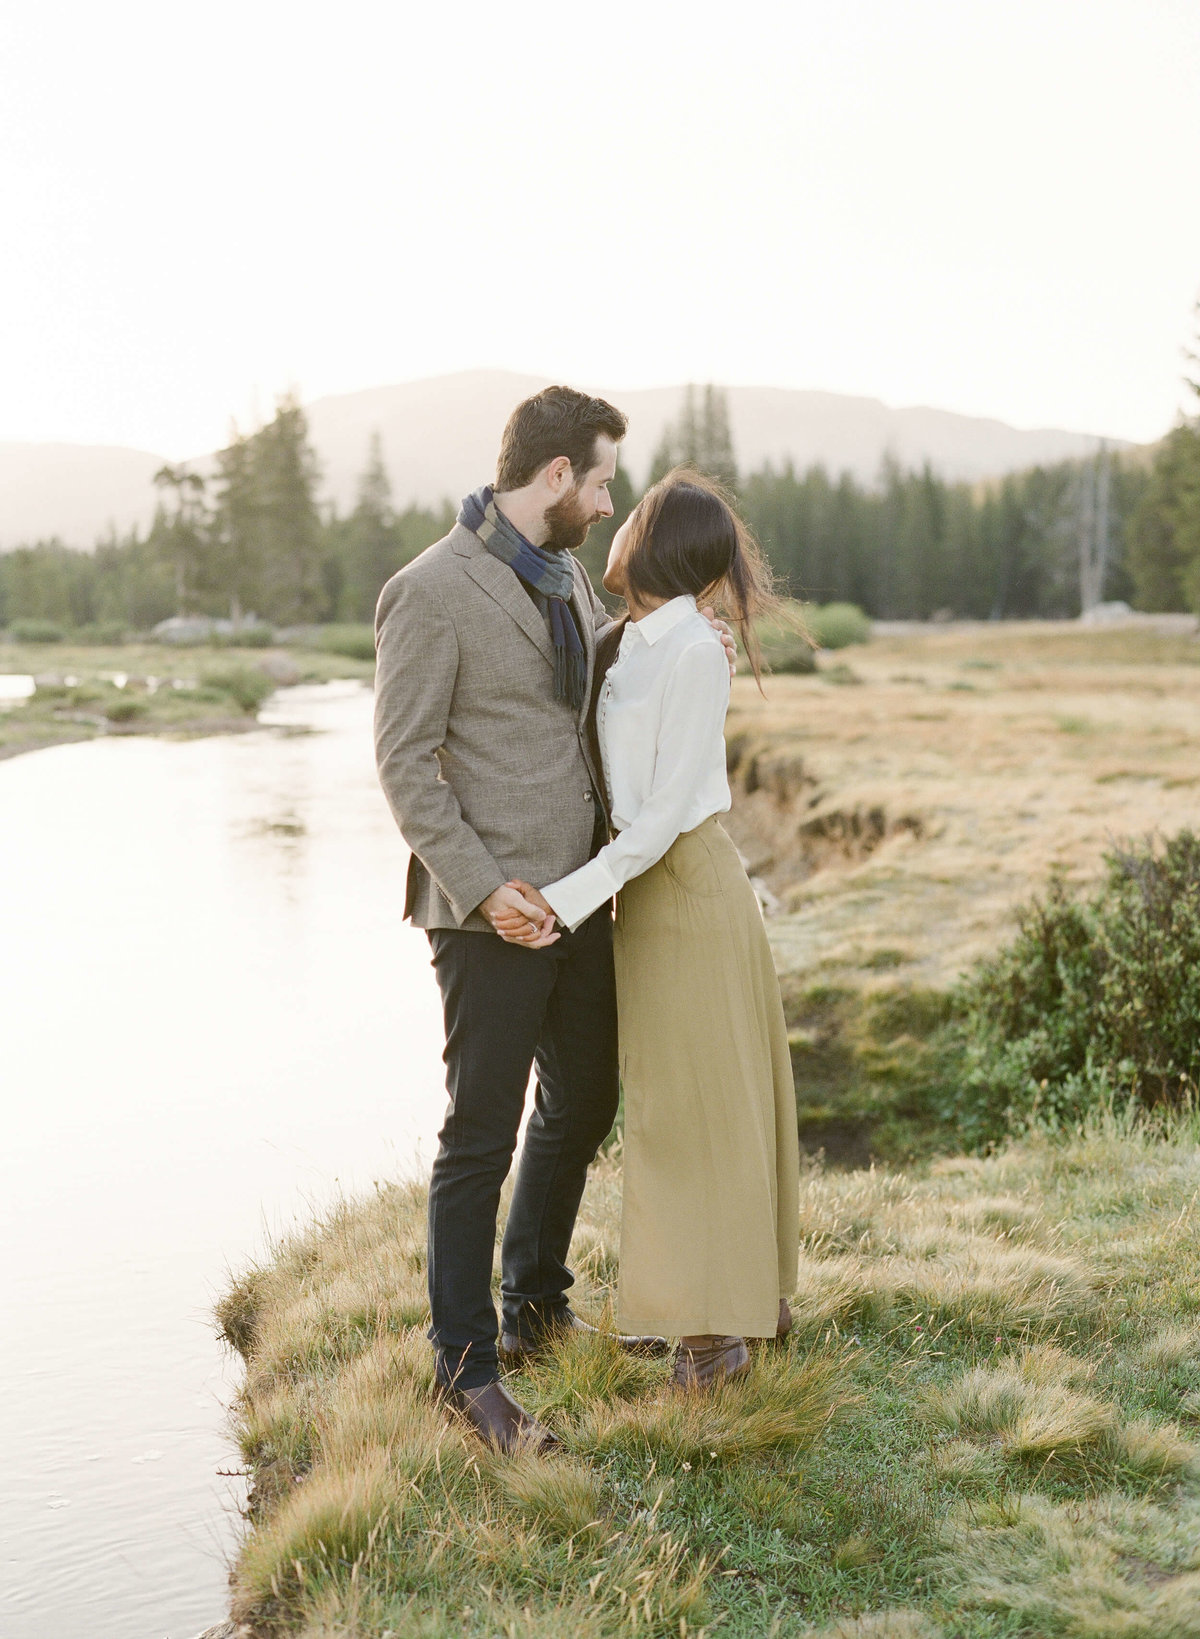 27-KTMerry-engagement-photography-Yosemite-park-stream